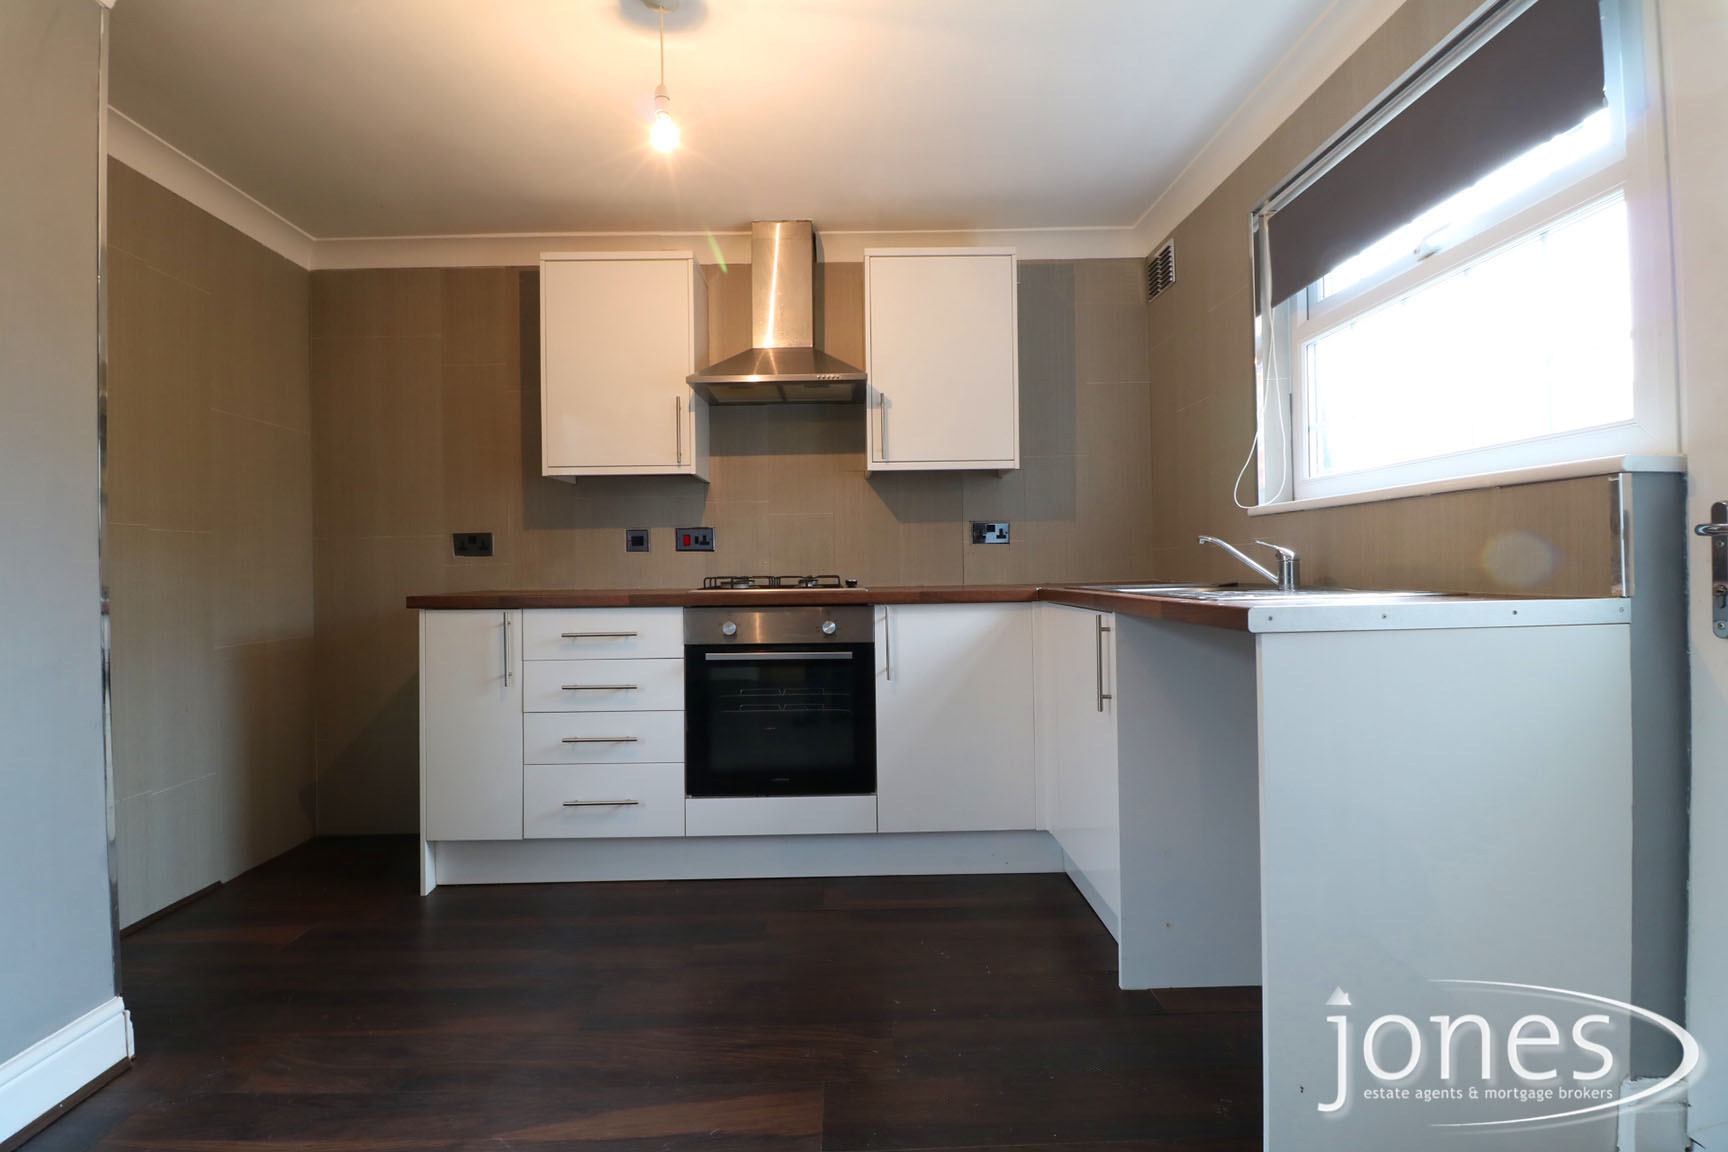 Home for Sale Let - Photo 04 Keats Road, Normanby, Middlesbrough, TS6 0RP